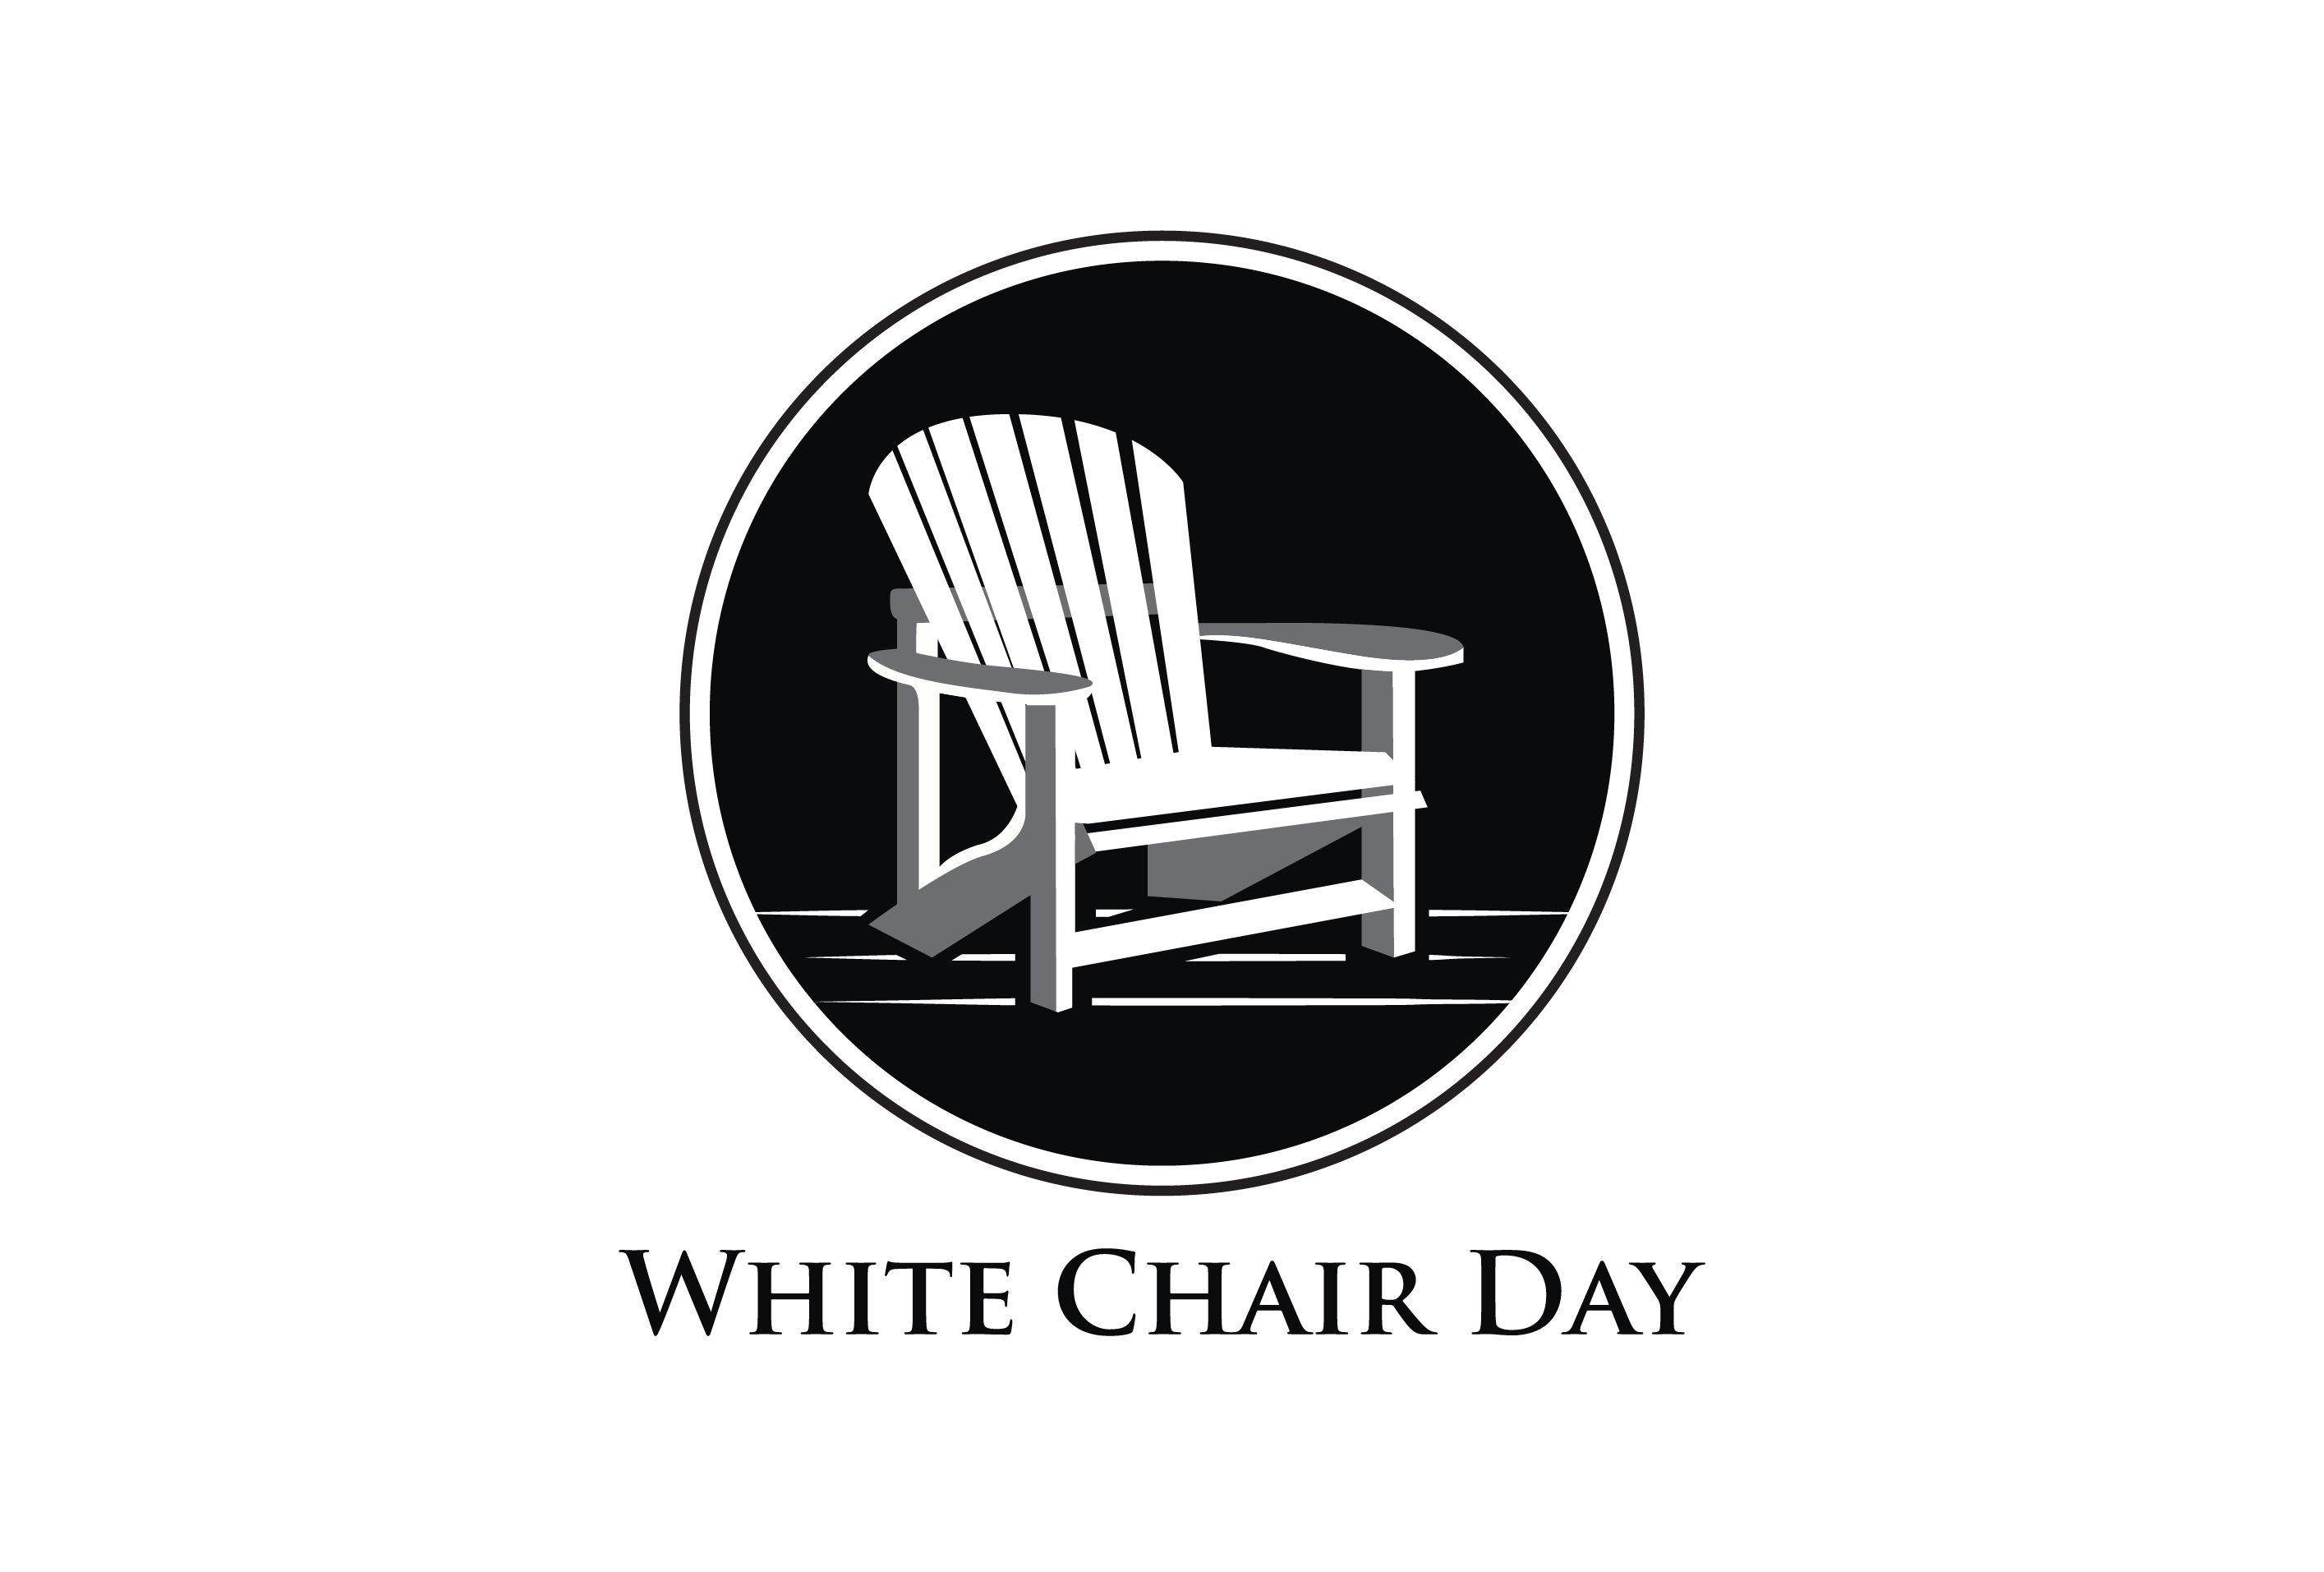 White Chair Day